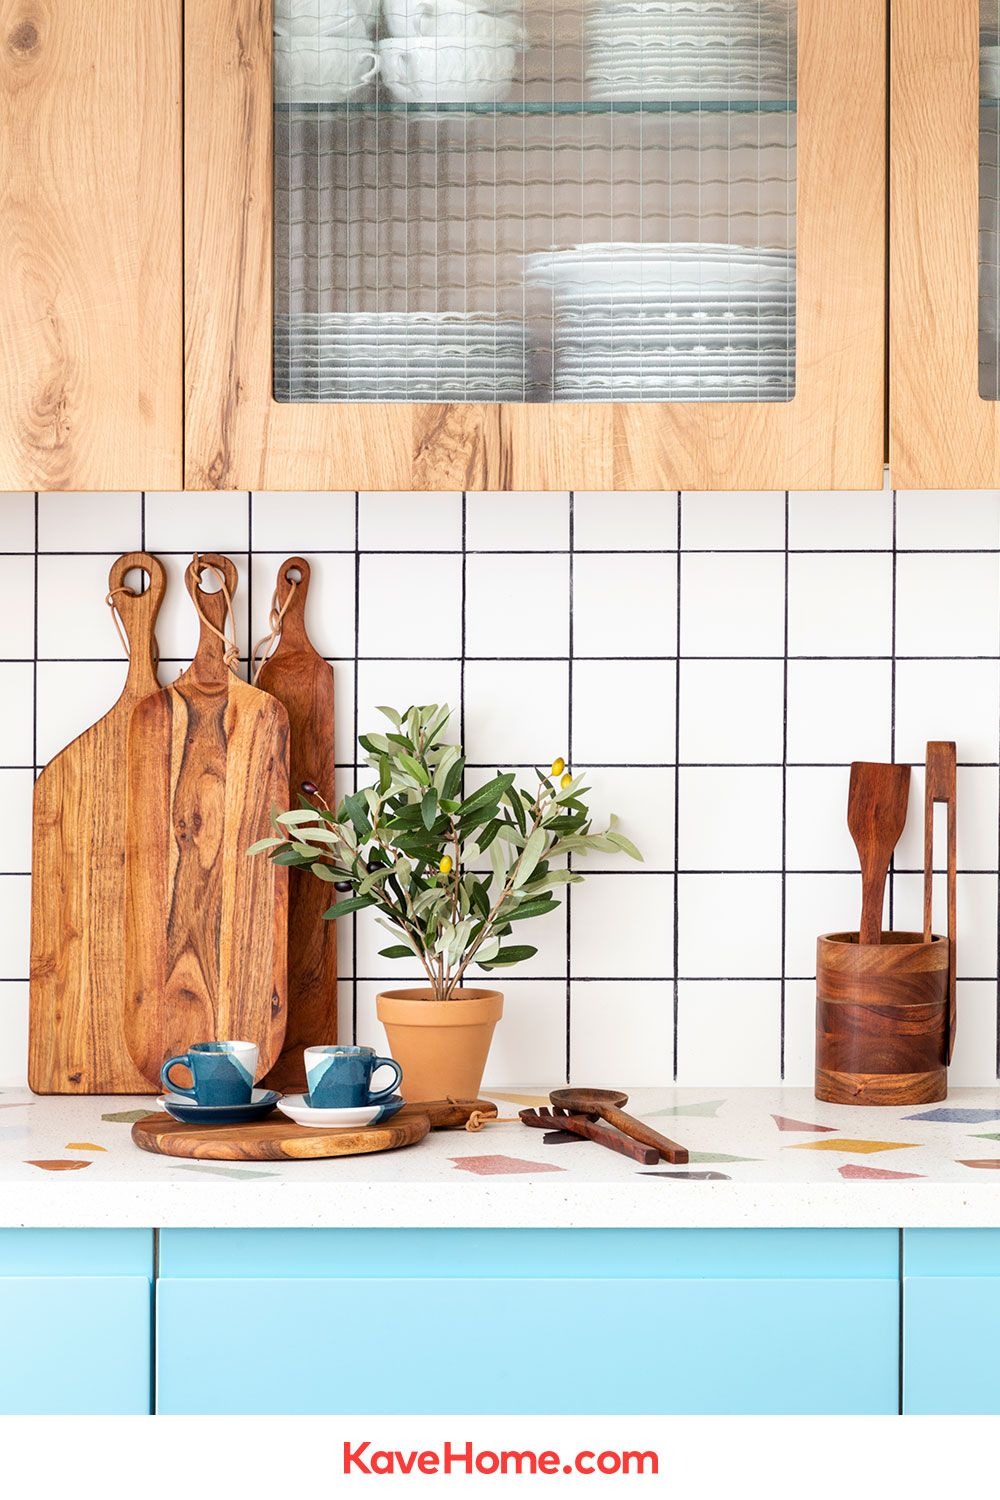 Yanila kitchen utensil holder  Kave Home® en 18  Ustensile